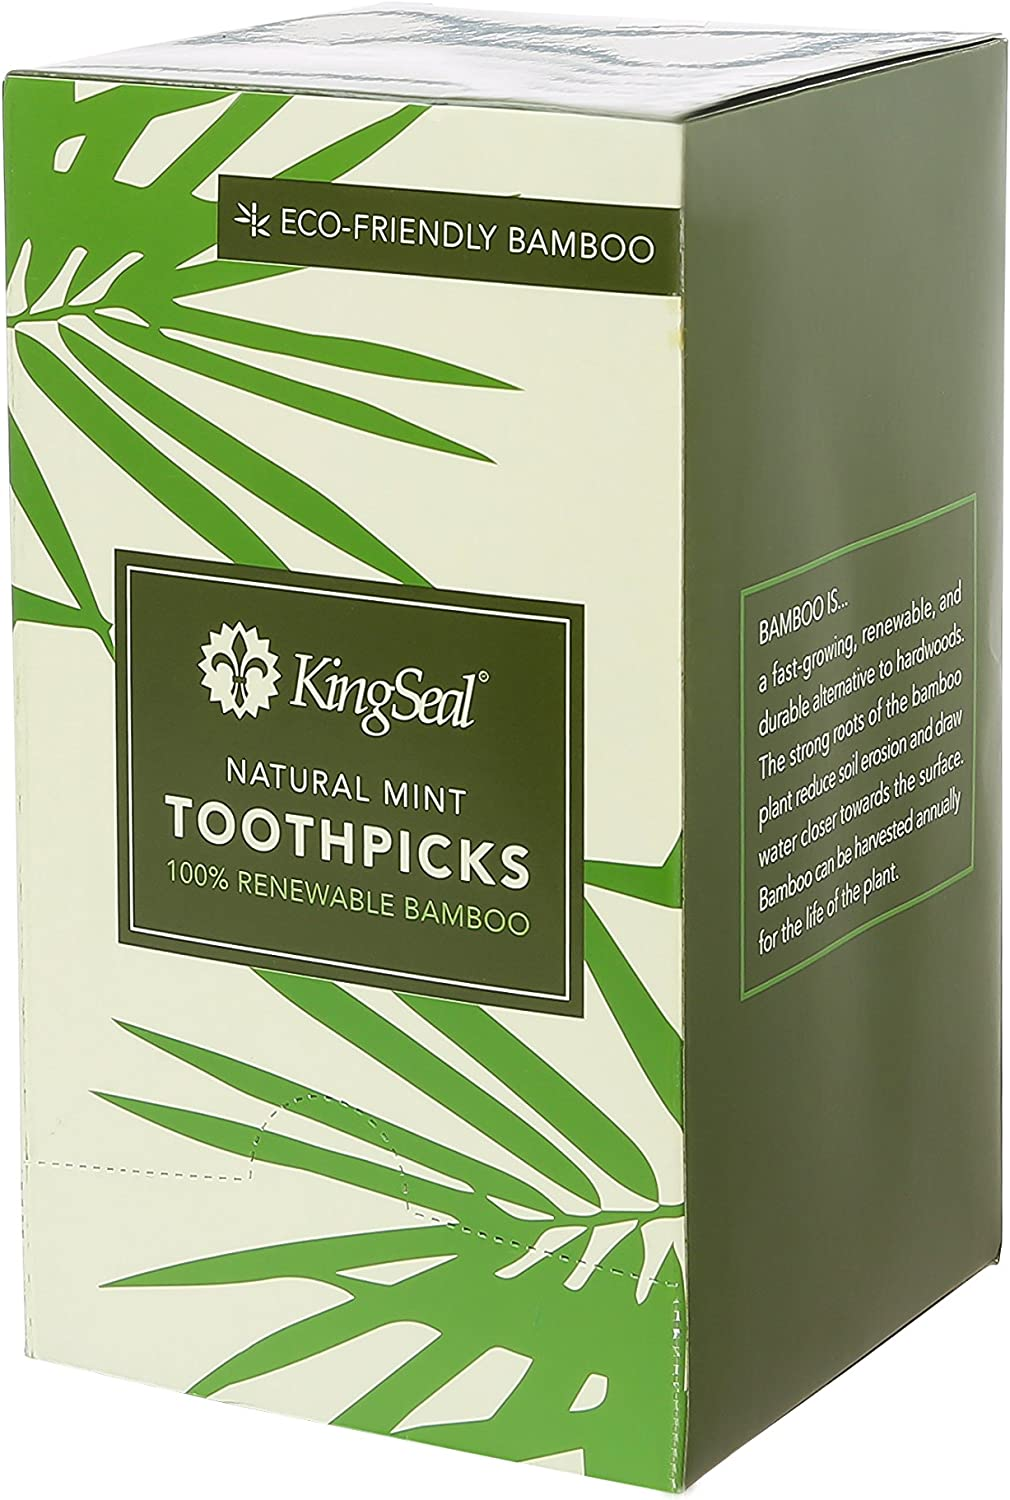 KingSeal Manufacturer regenerated product 67% OFF of fixed price 2.5 Inch Individually Paper Mint Wrapped Bamboo Flavor